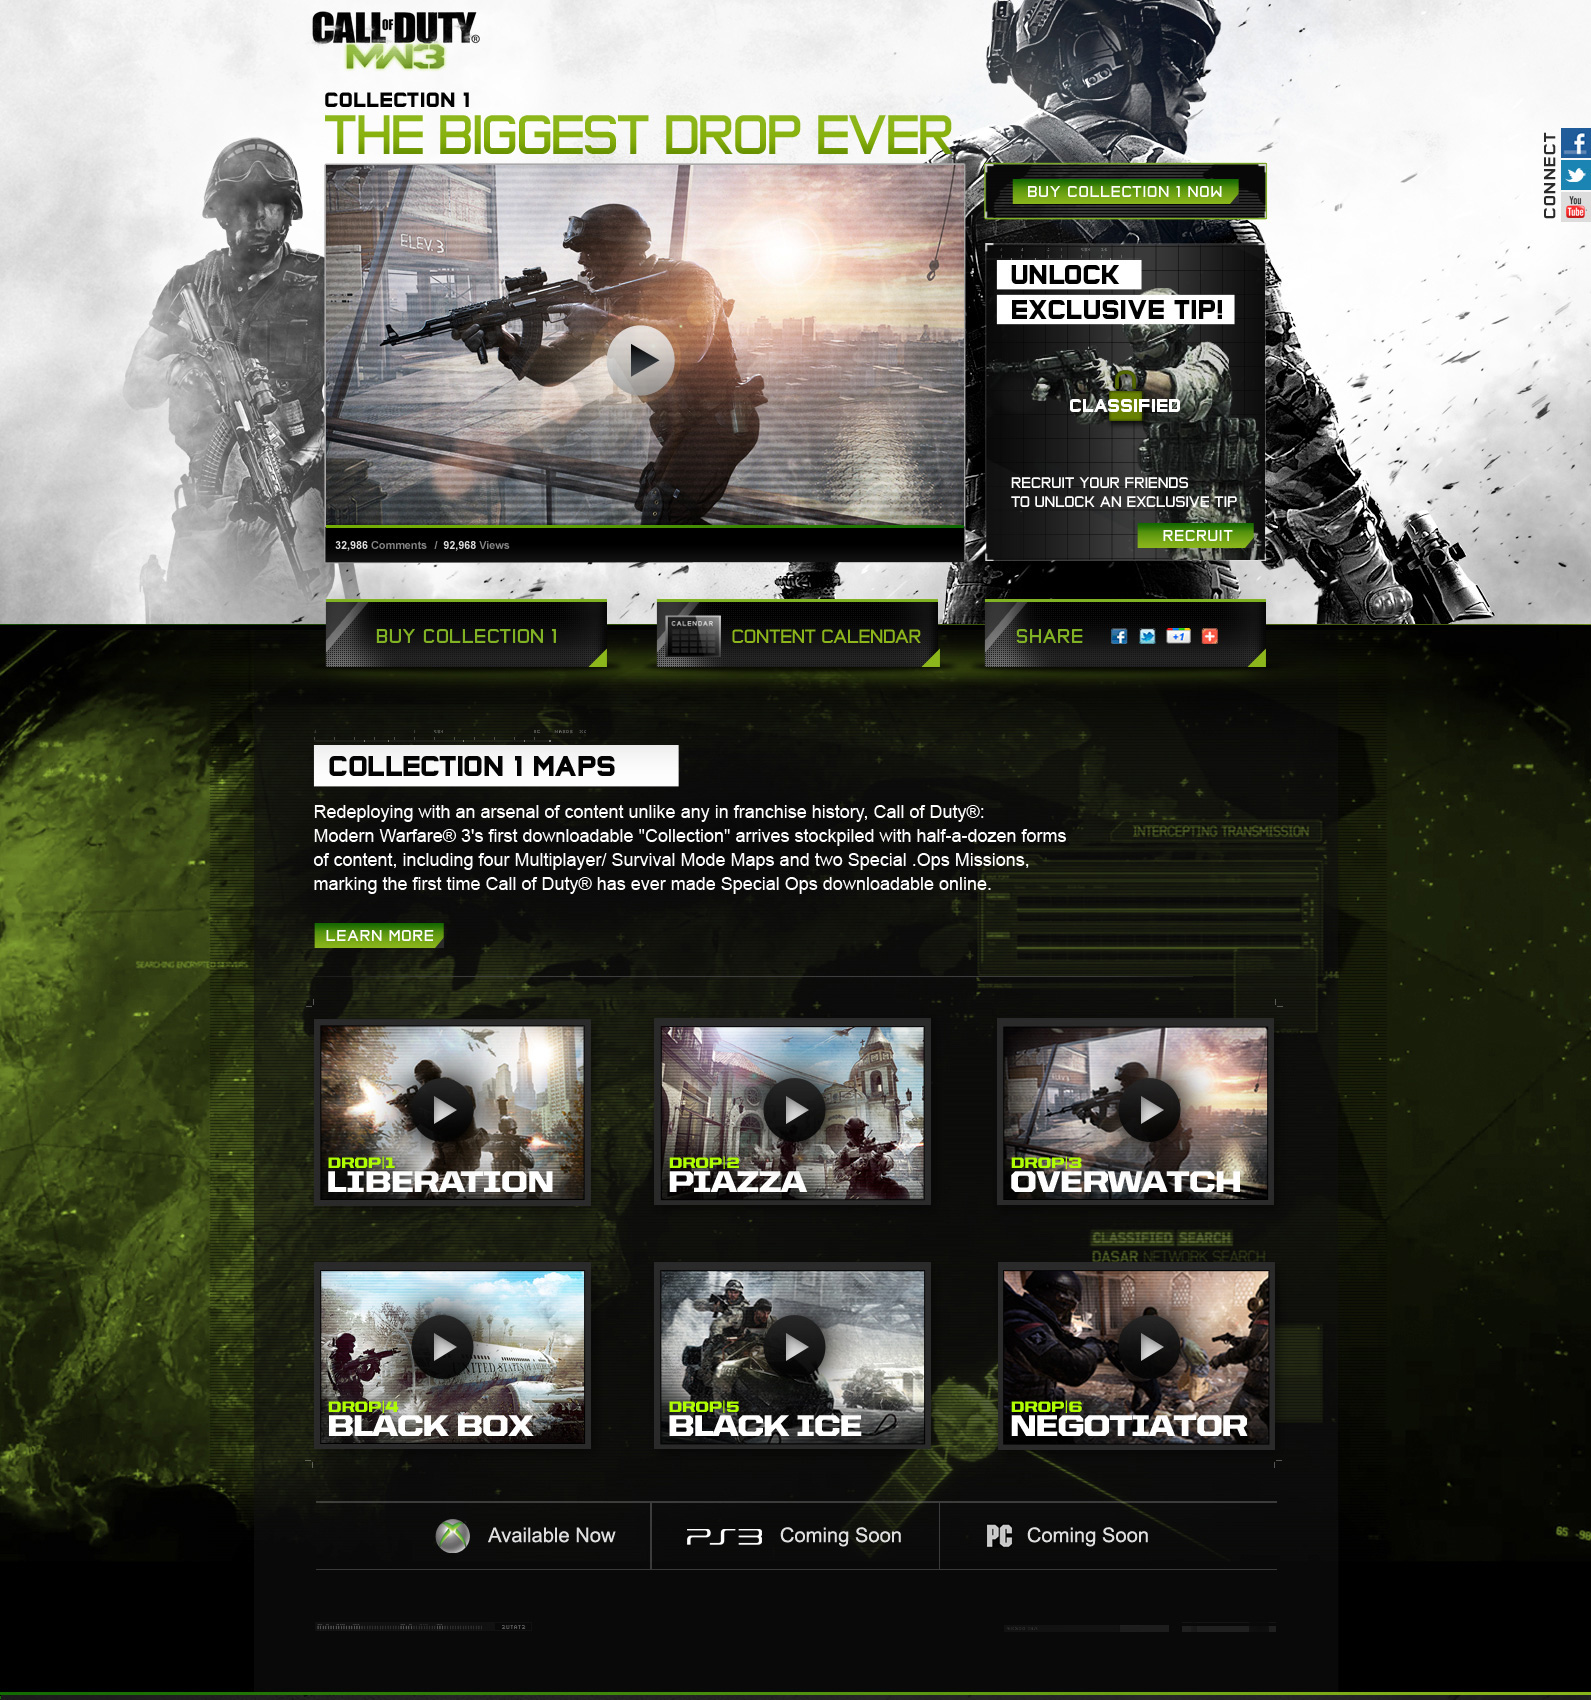 Call of Duty collections site